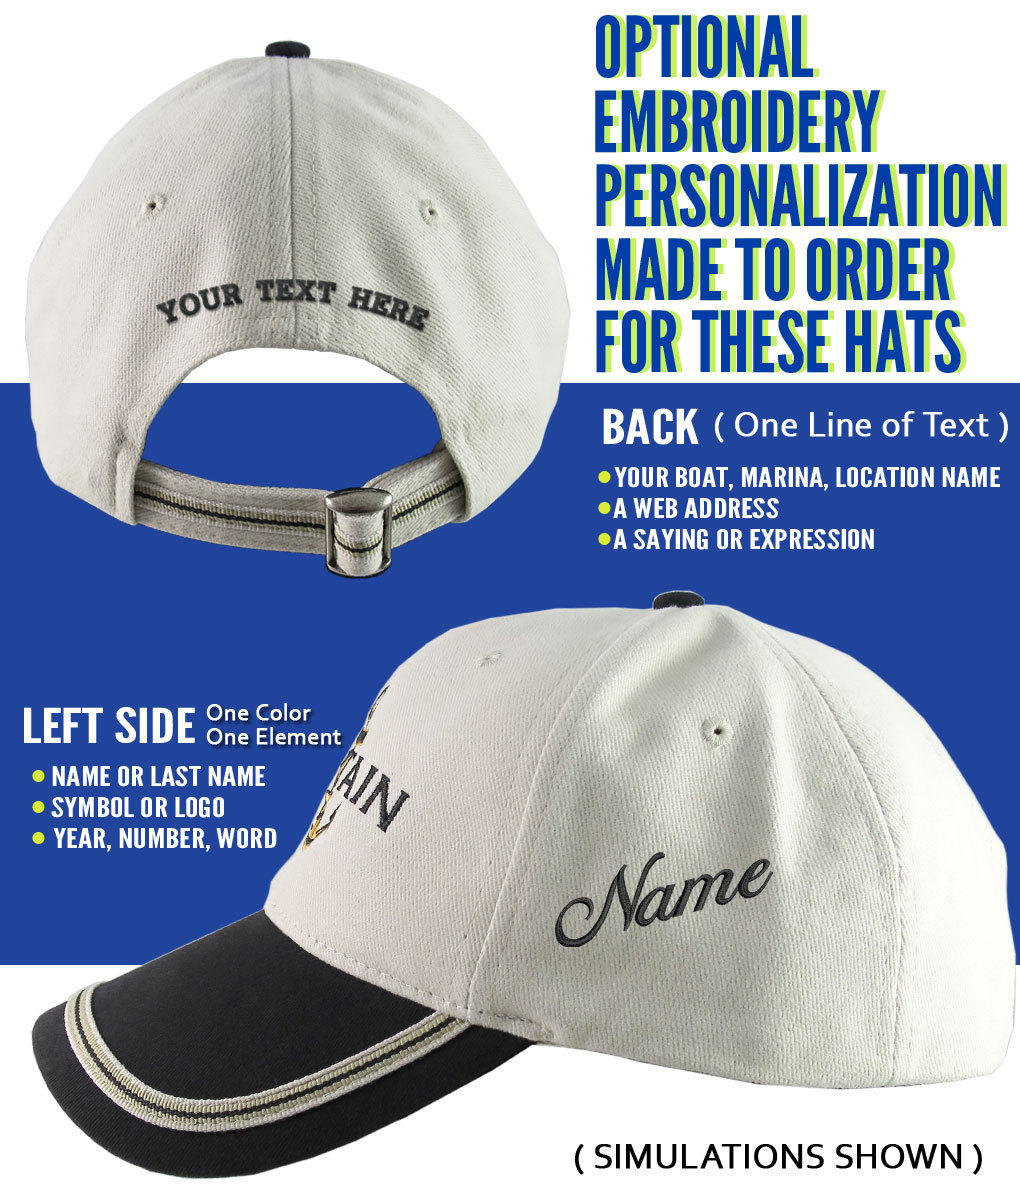 f89ea01f7cde0 Nautical Star Anchor Captain and Crew Embroidery Adjustable Black and Beige  Structured Baseball Cap Options to Personalize Boat Name